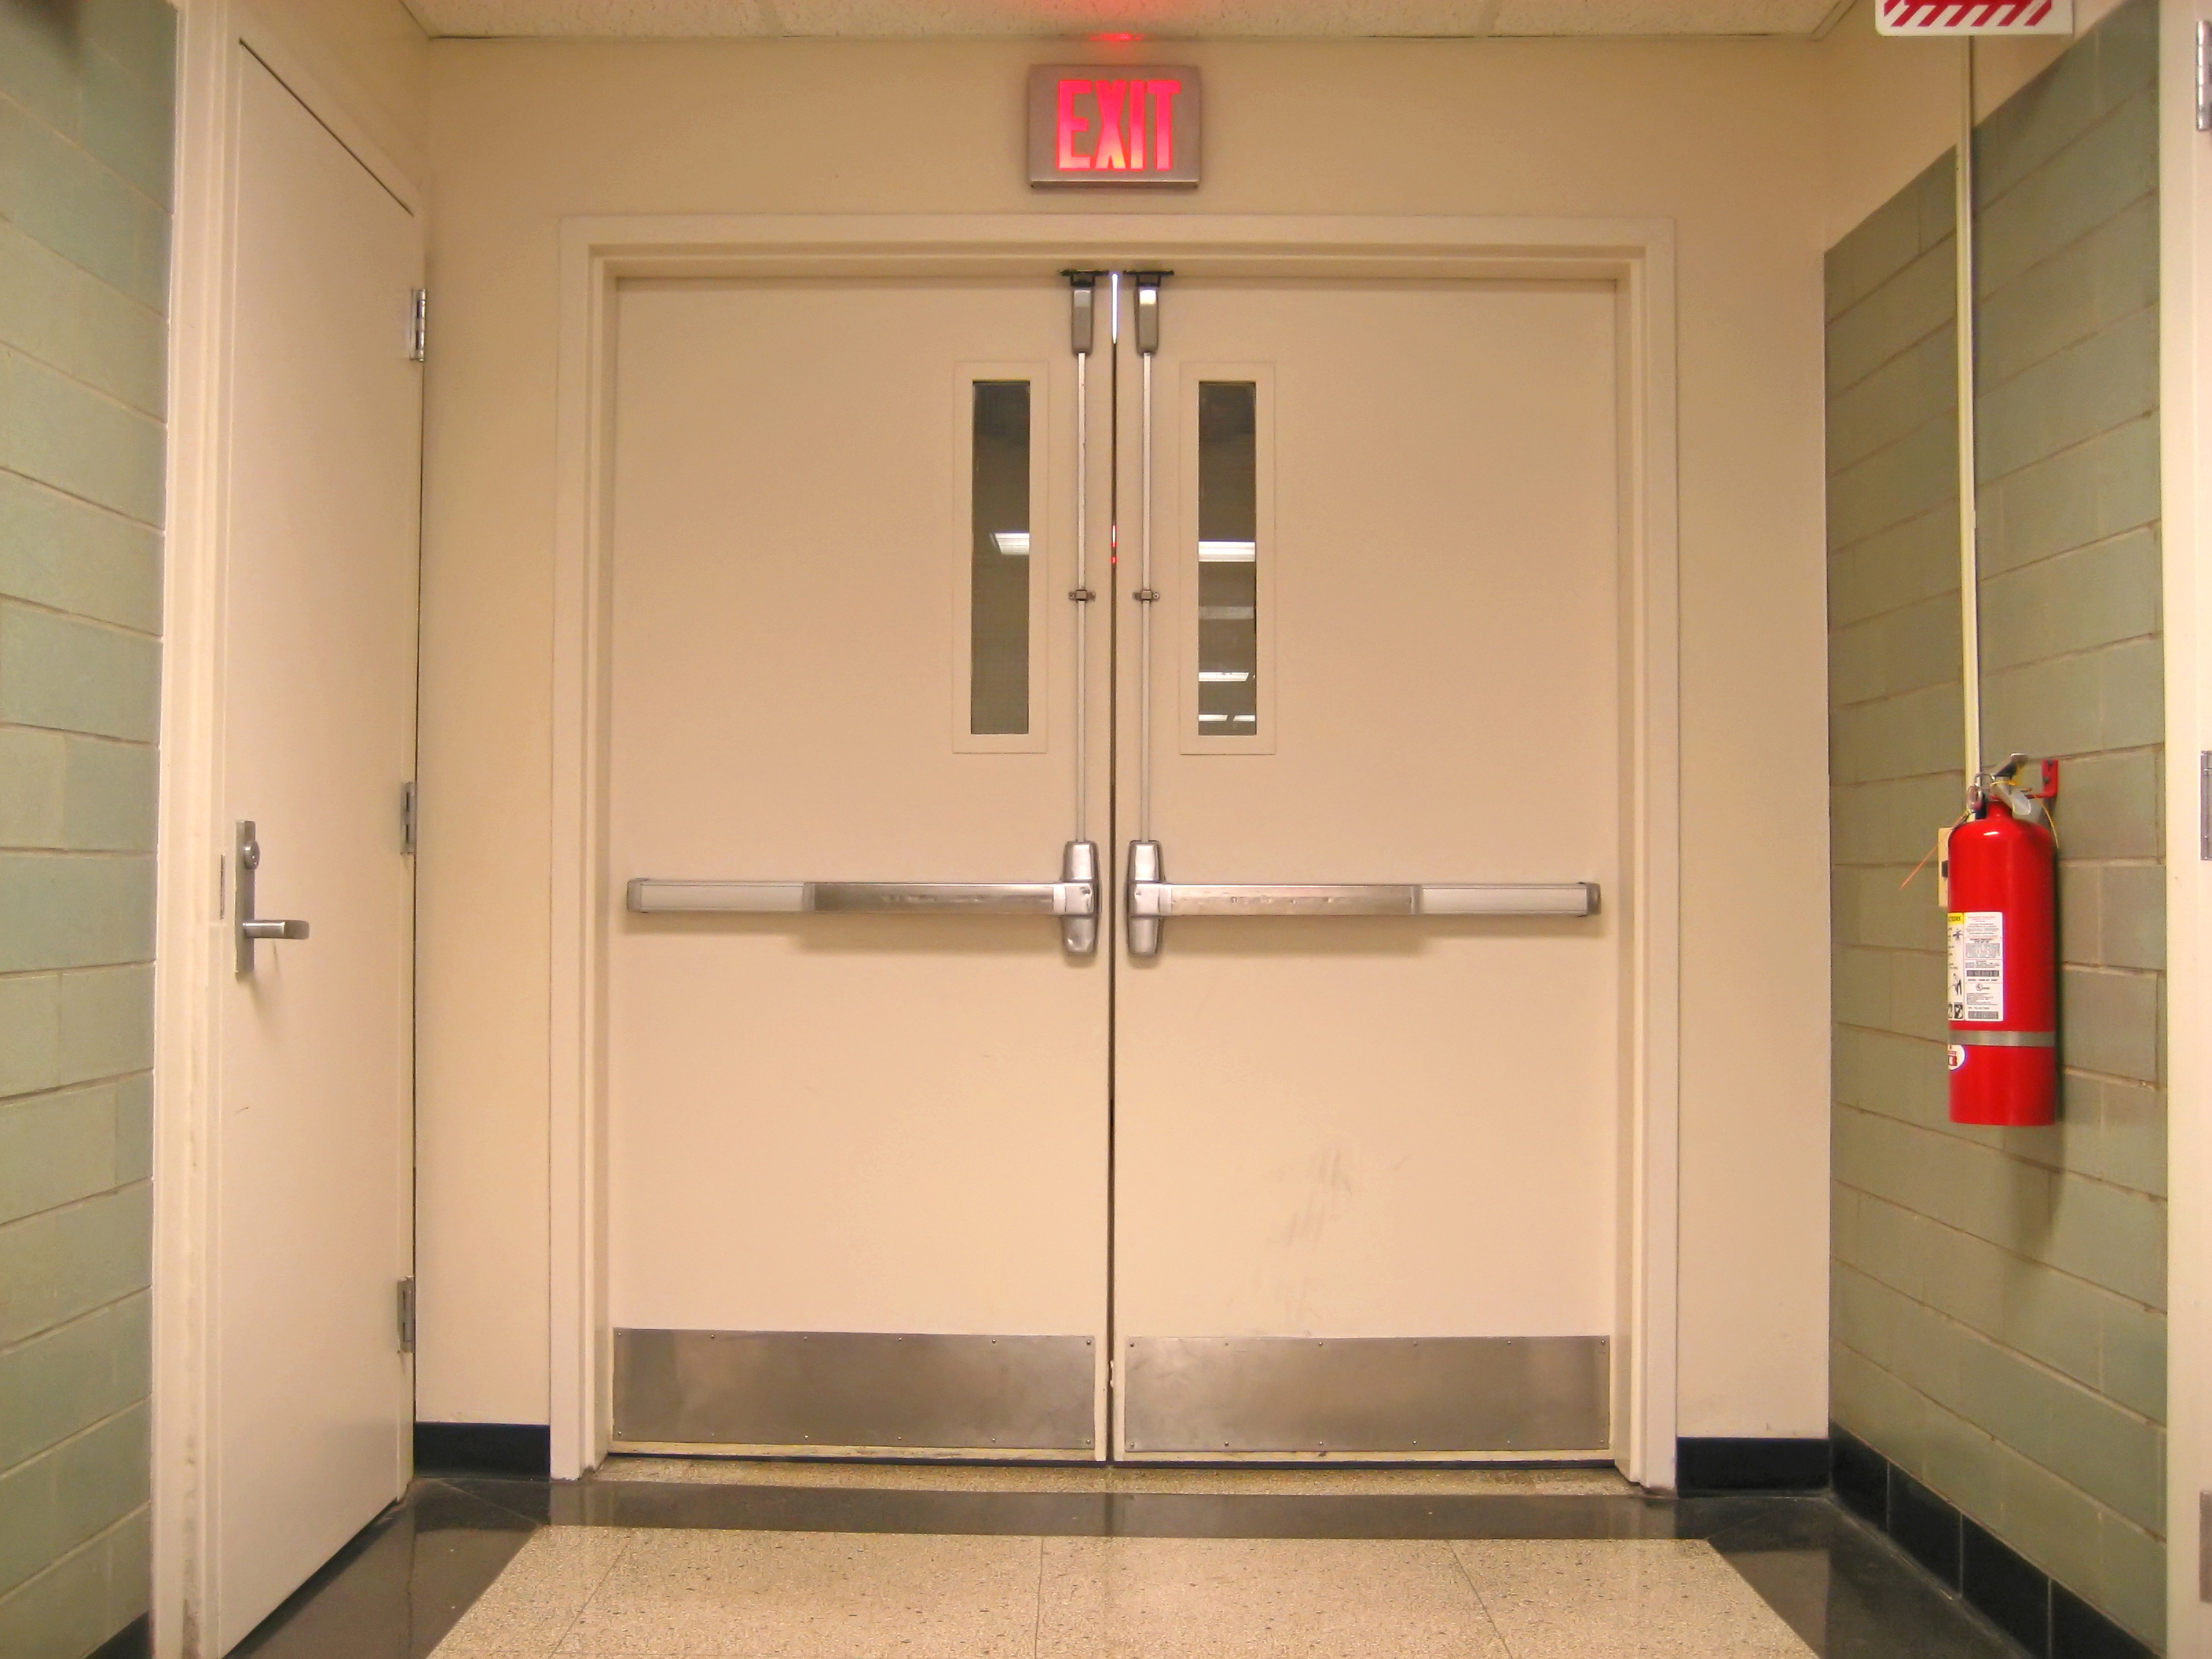 hartford rocky installation hill automatic sliding middletown steel overhead ct commercial clopay door doors repair